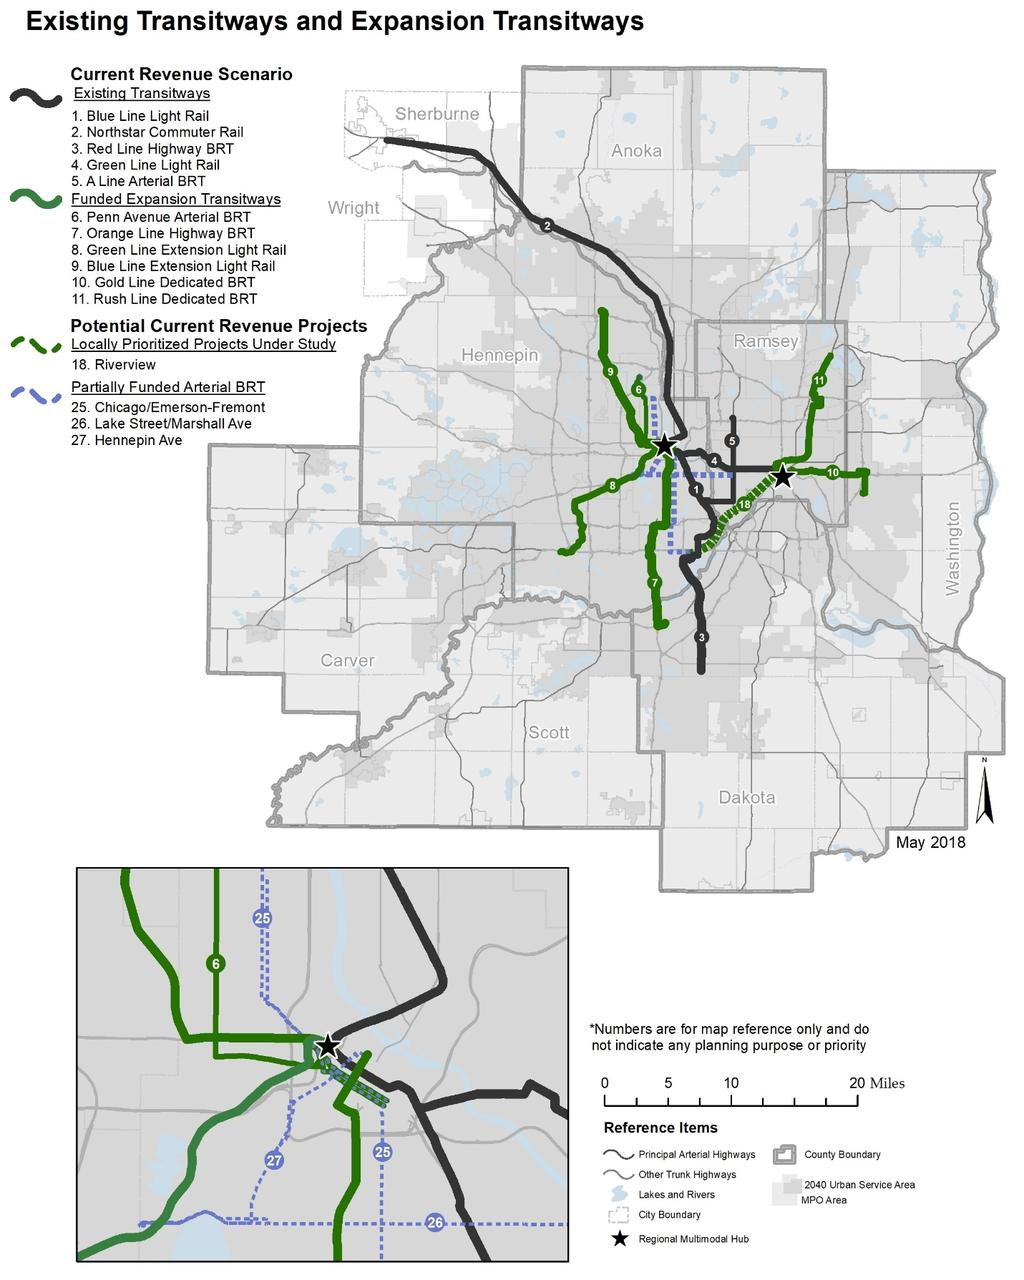 Figure 6-8: Map of Existing Transitways and Current Revenue Scenario Expansion Transitways 2040